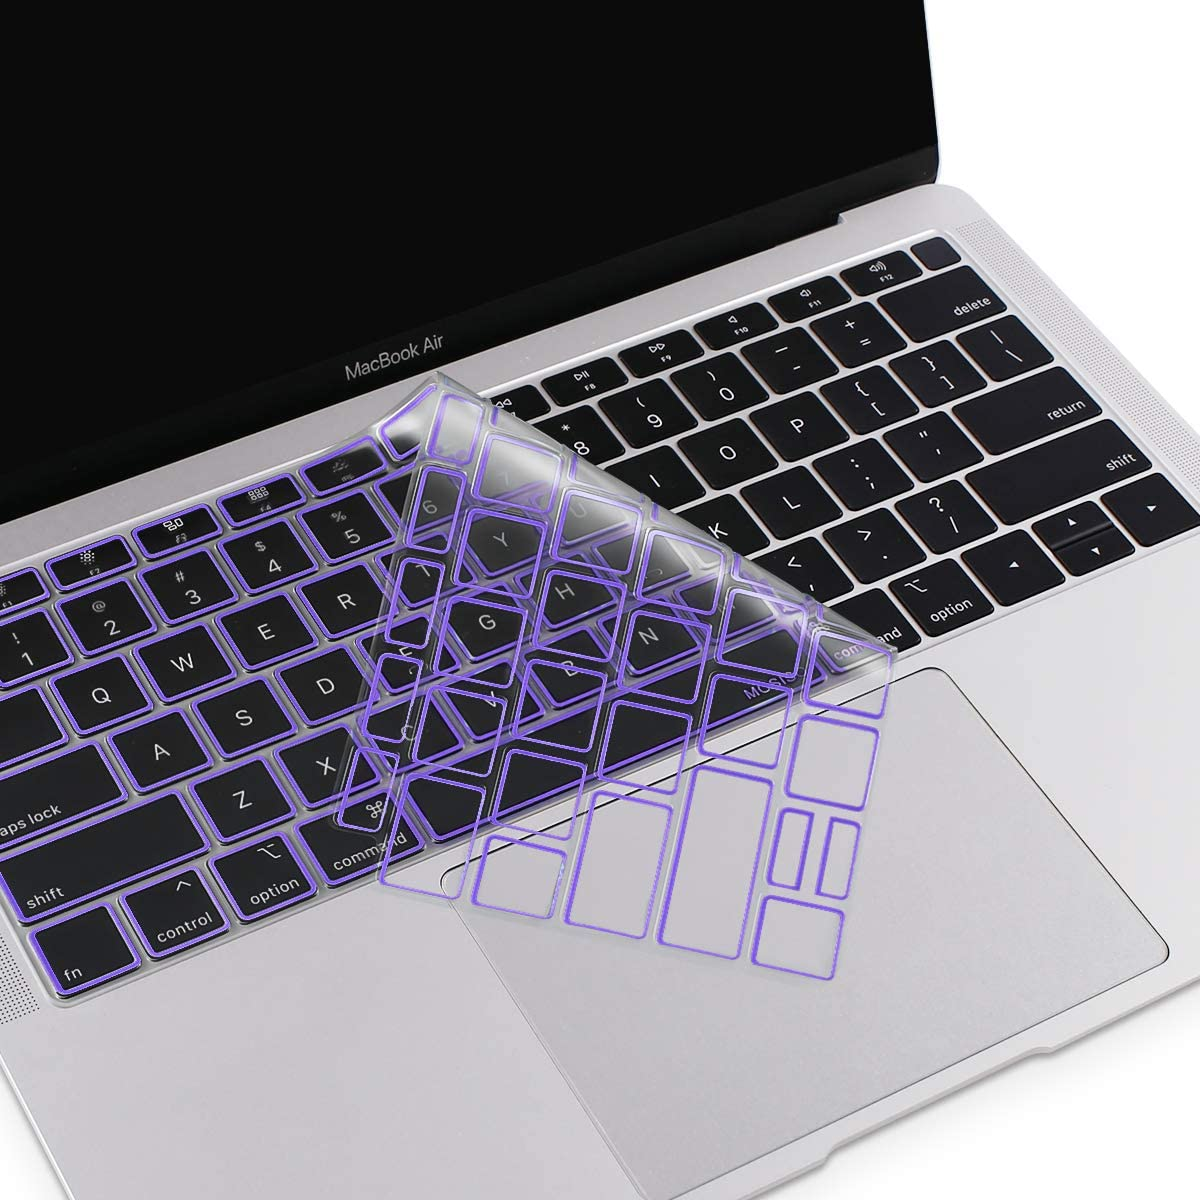 MOSISO Premium Ultra Thin TPU Keyboard Cover Compatible with MacBook Air 13 inch 2019 2018 Release A1932 Retina Display with Touch ID, Soft Protective Transparent Skin Protector, Ultra Violet